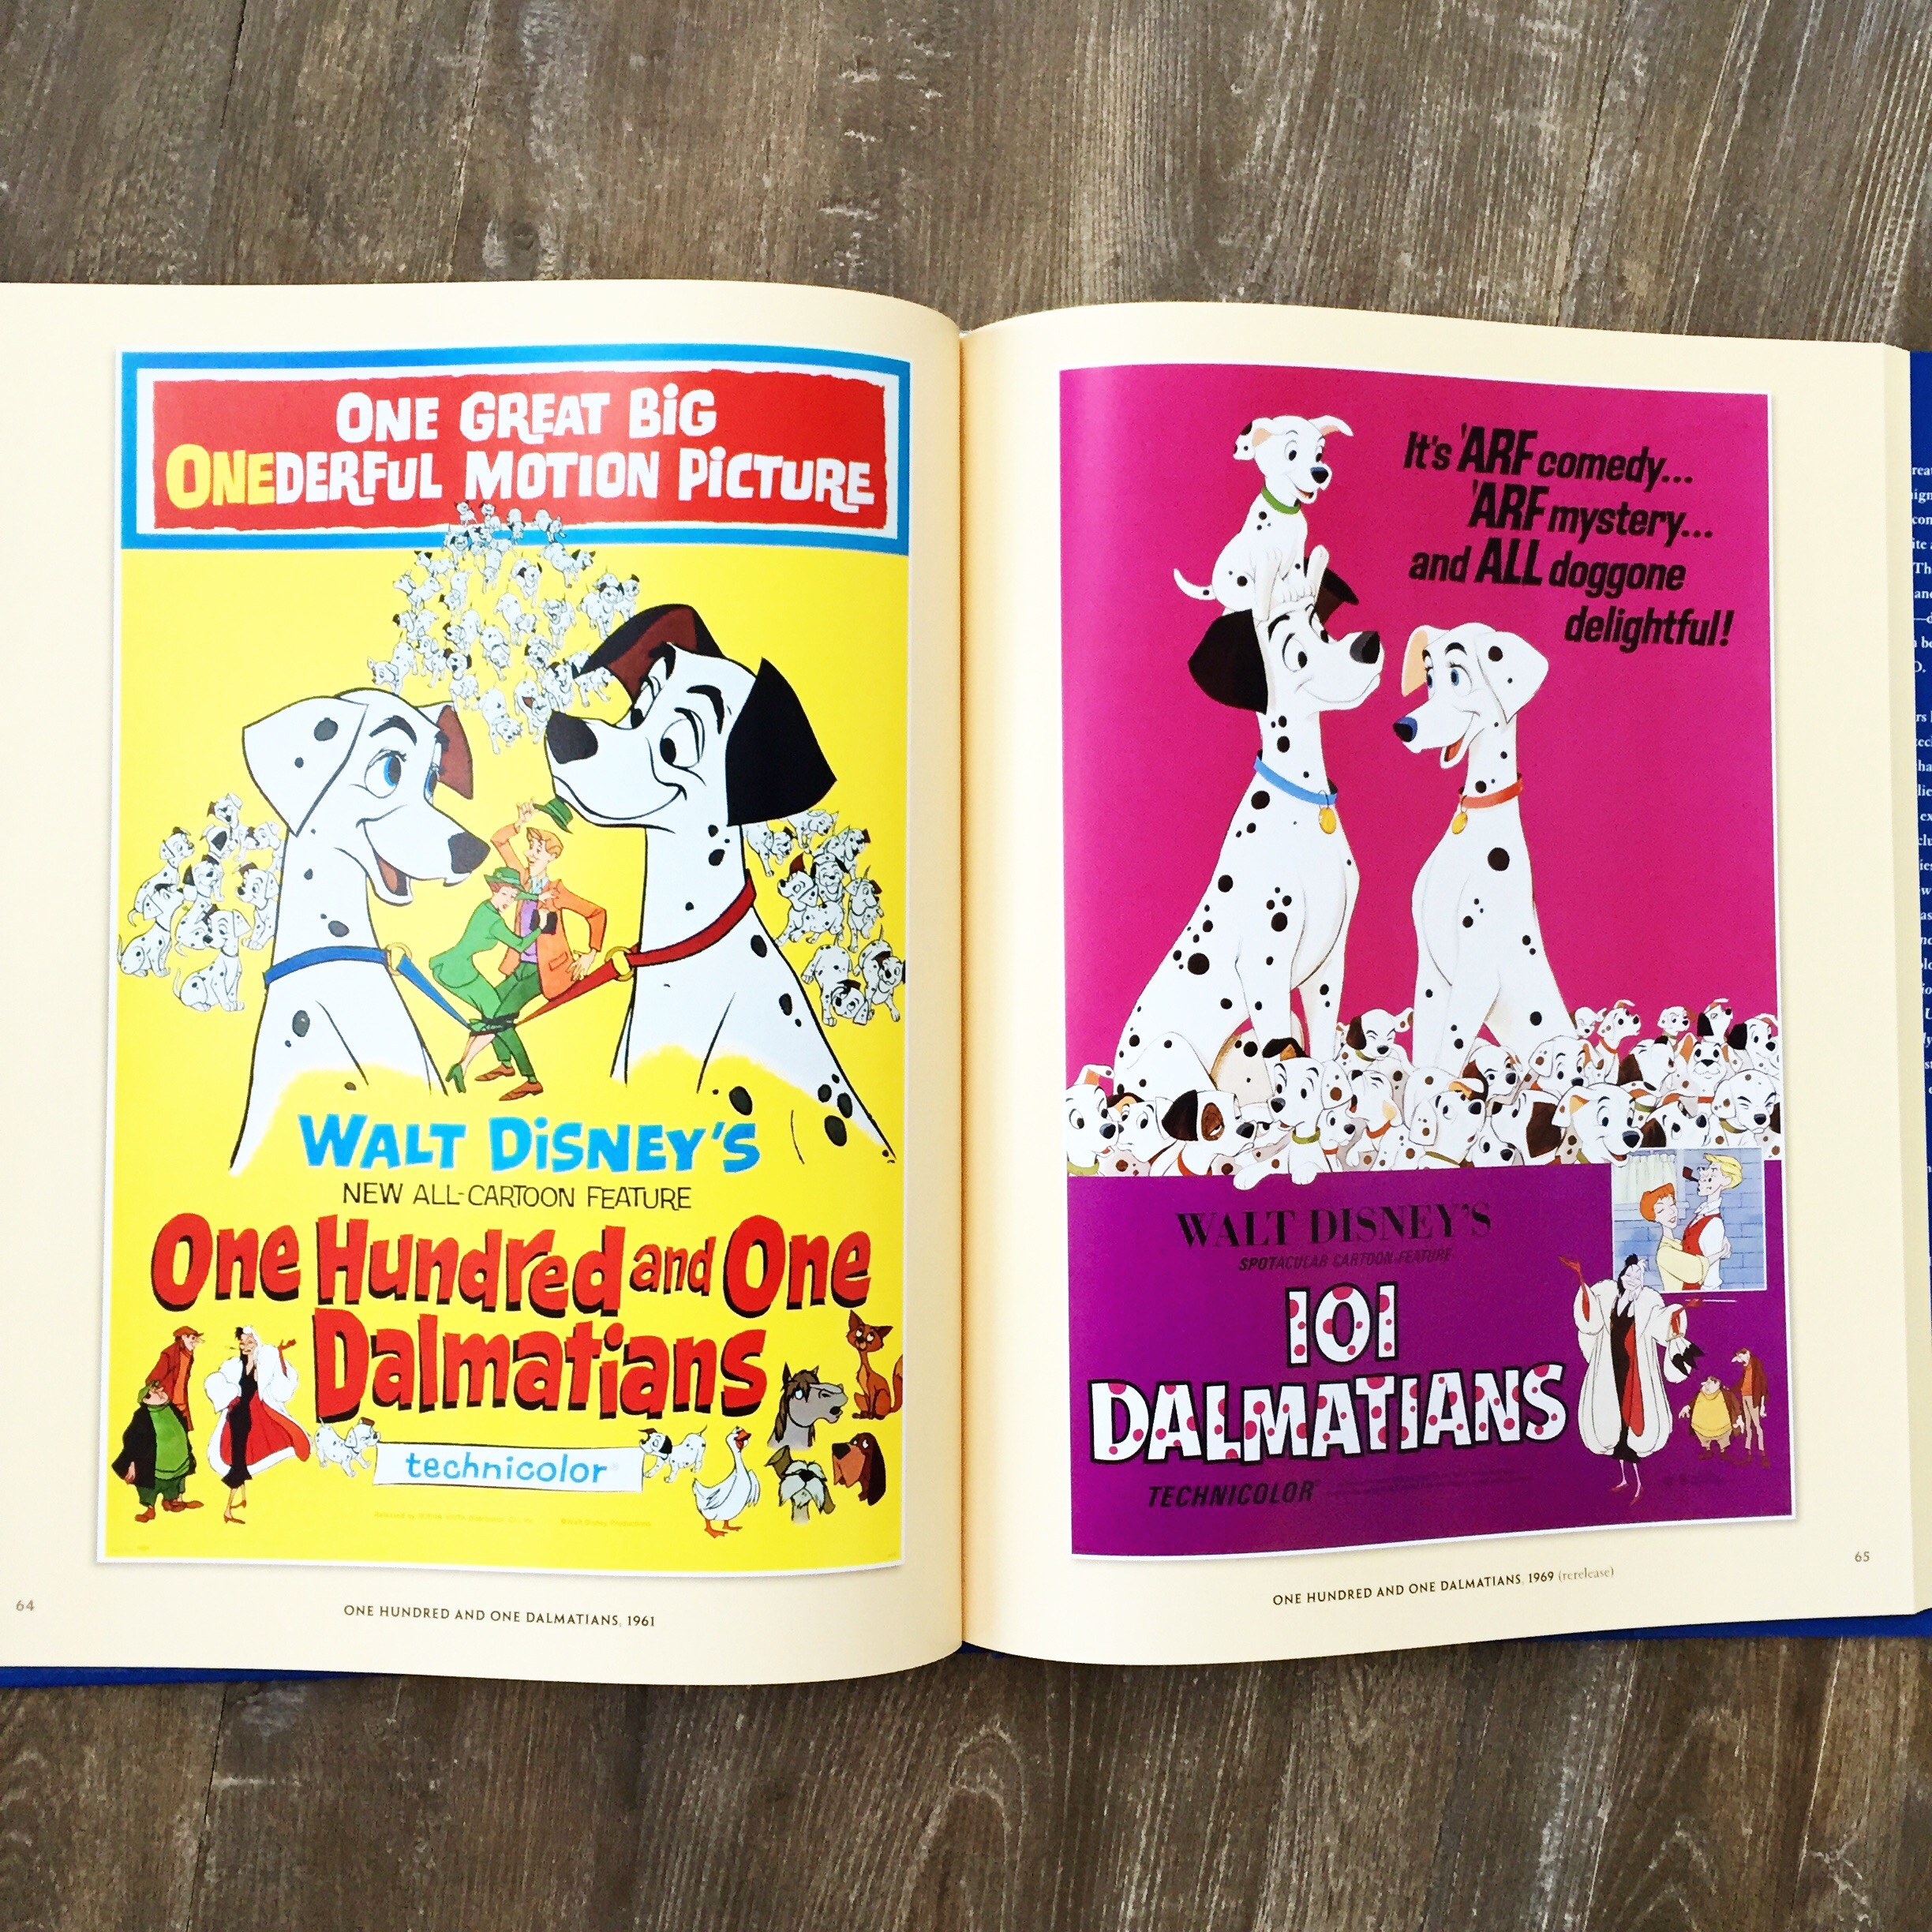 Photo of original posters in the  Disney Movie Poster Book